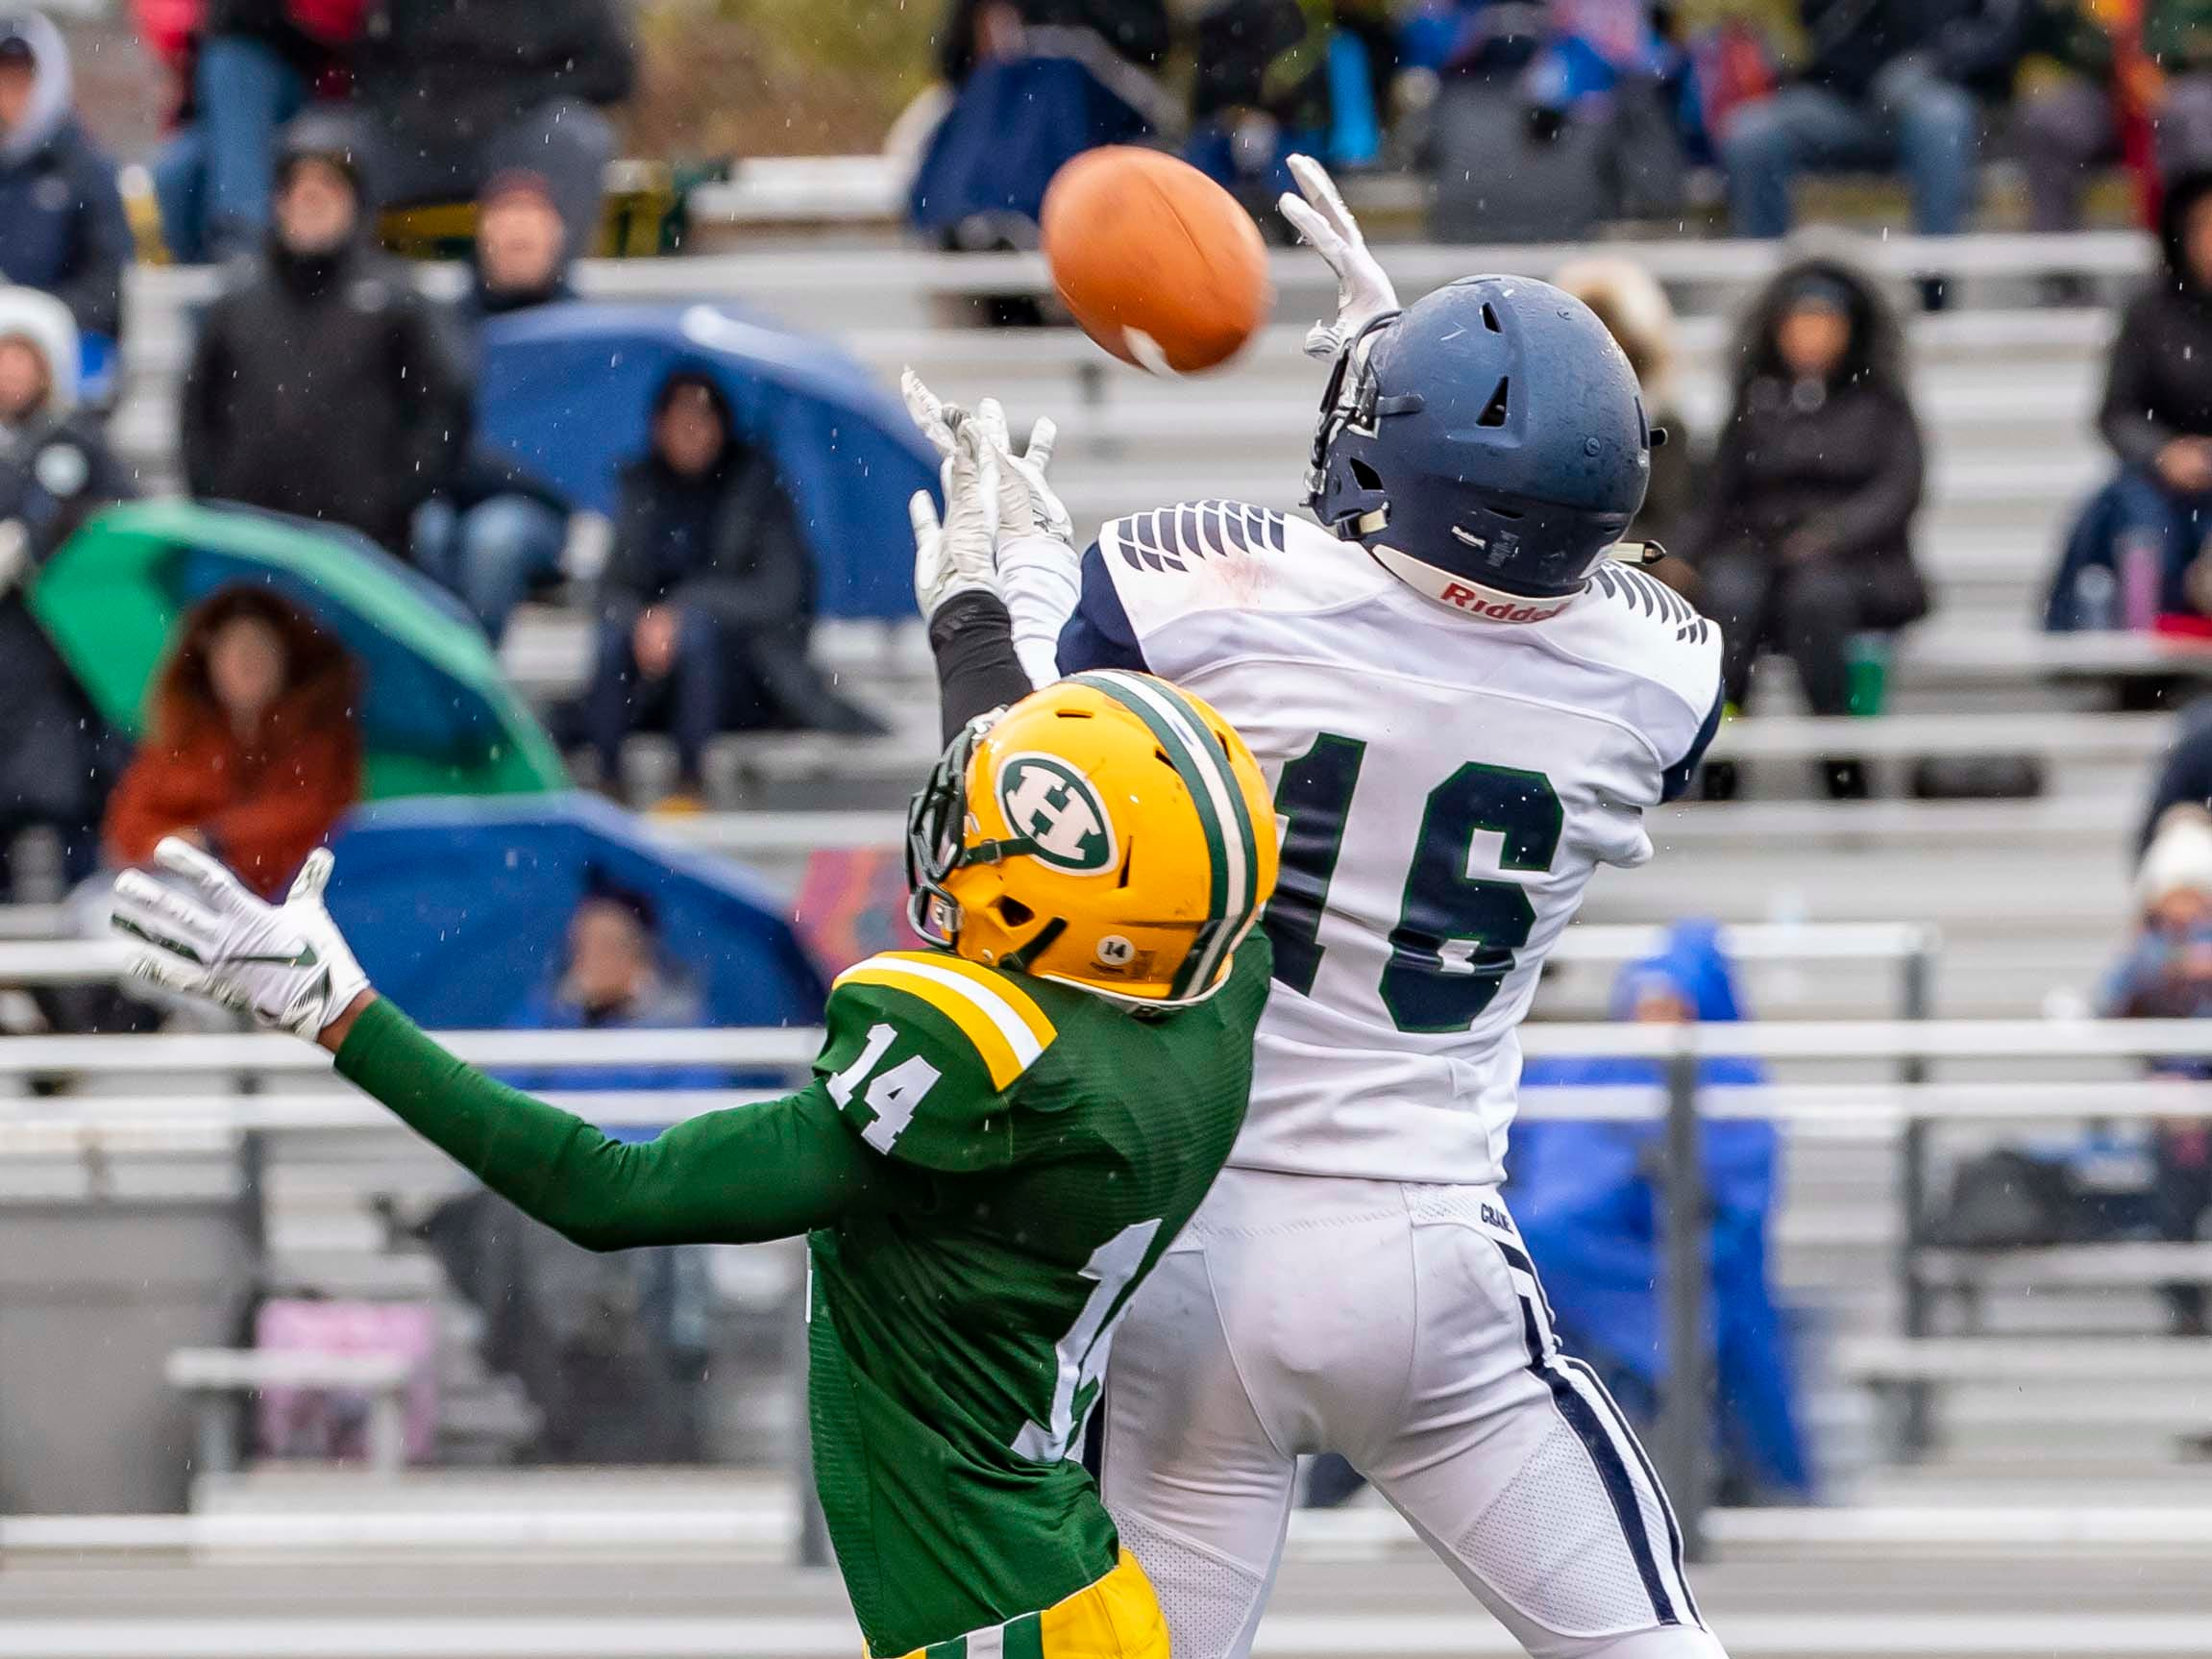 Jacob Peruski (16) of Cranbrook Kingswood attempts to catch a pass as Javair Beeler (14) of Farmington Hills Harrison Hawks defends in the second half.